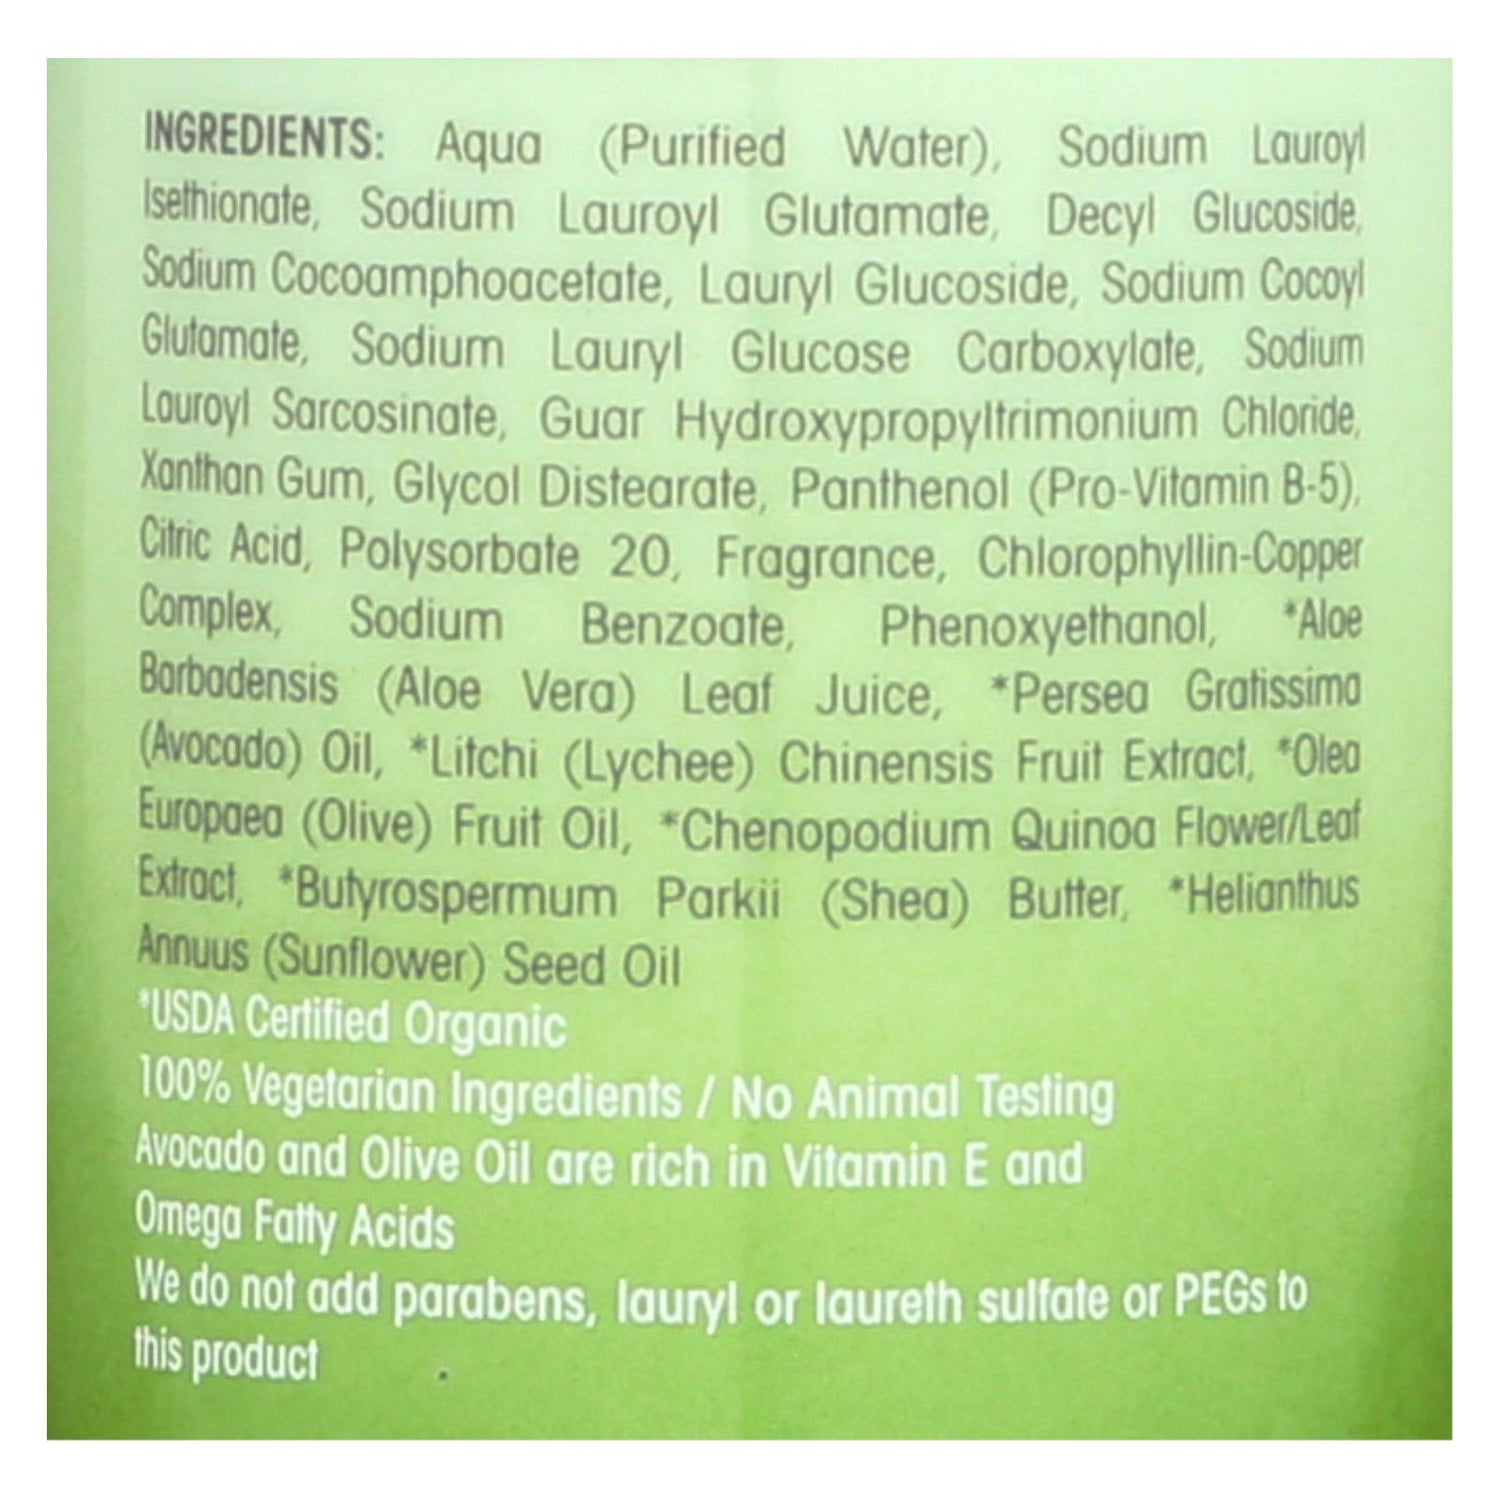 Giovanni Hair Care Products 2chic Body Wash - Ultra-moist Avocado And Olive - 10.5 Fl Oz